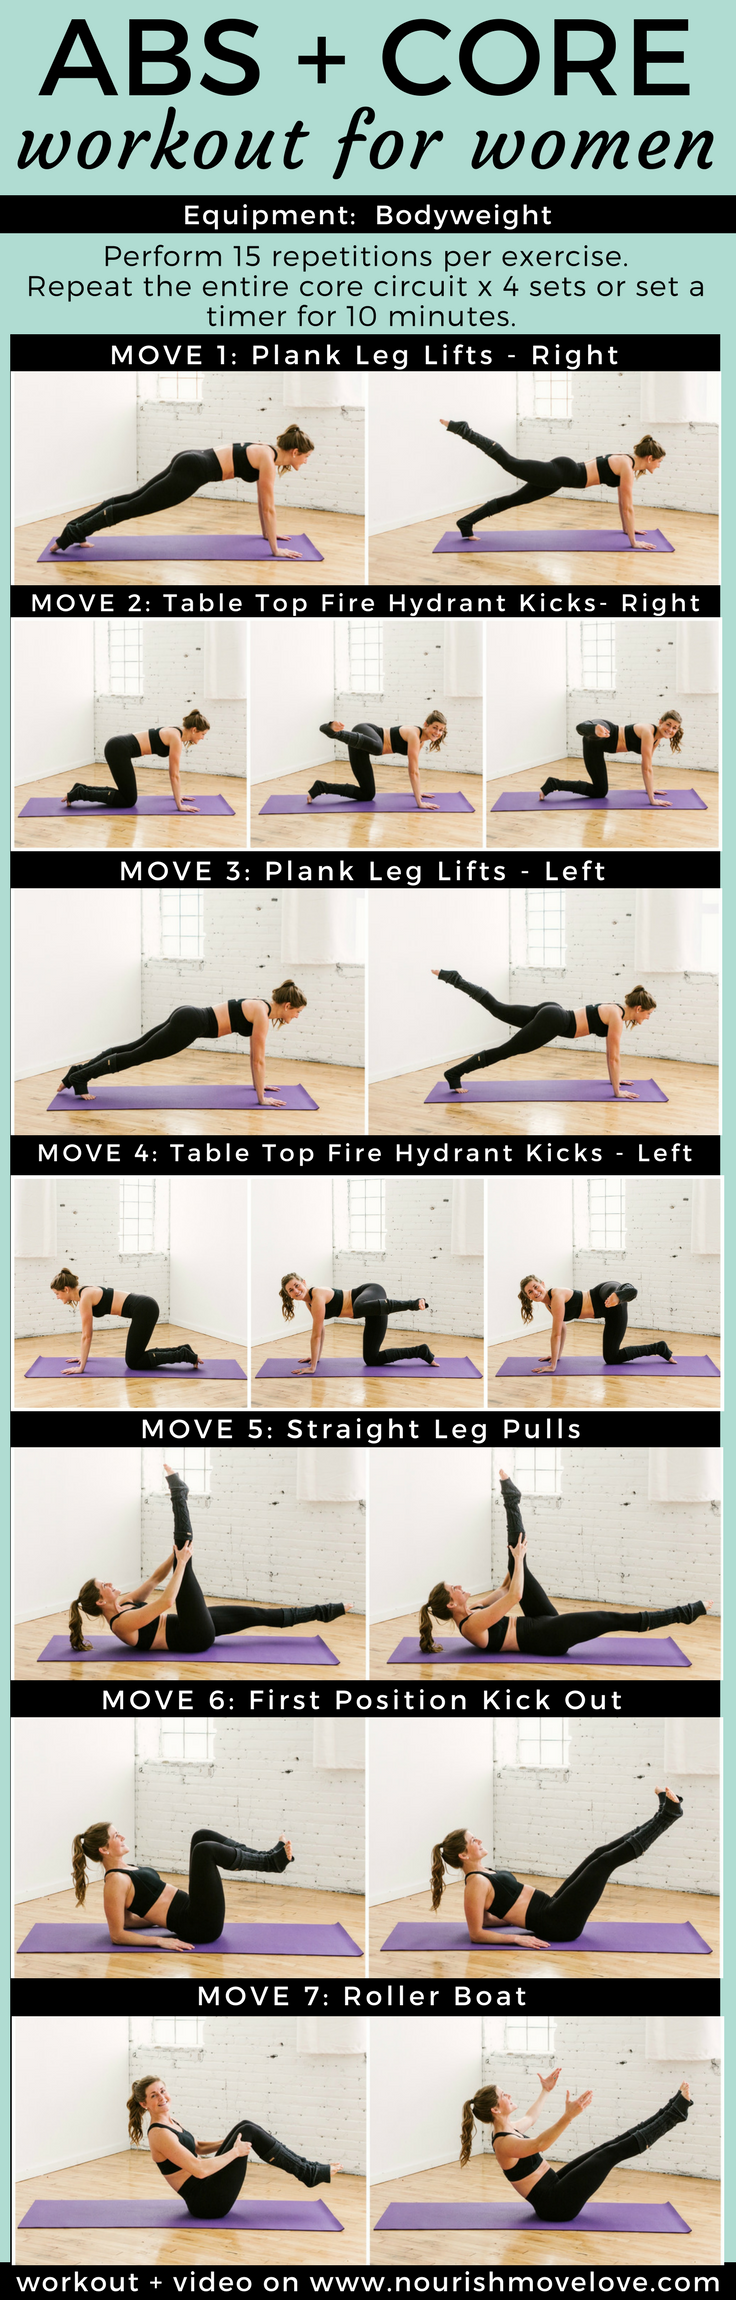 10 Minute Barre Core Workout Butt Abs Nourish Move Love Blog Timer Circuit I At Home For Women Exercises Ii